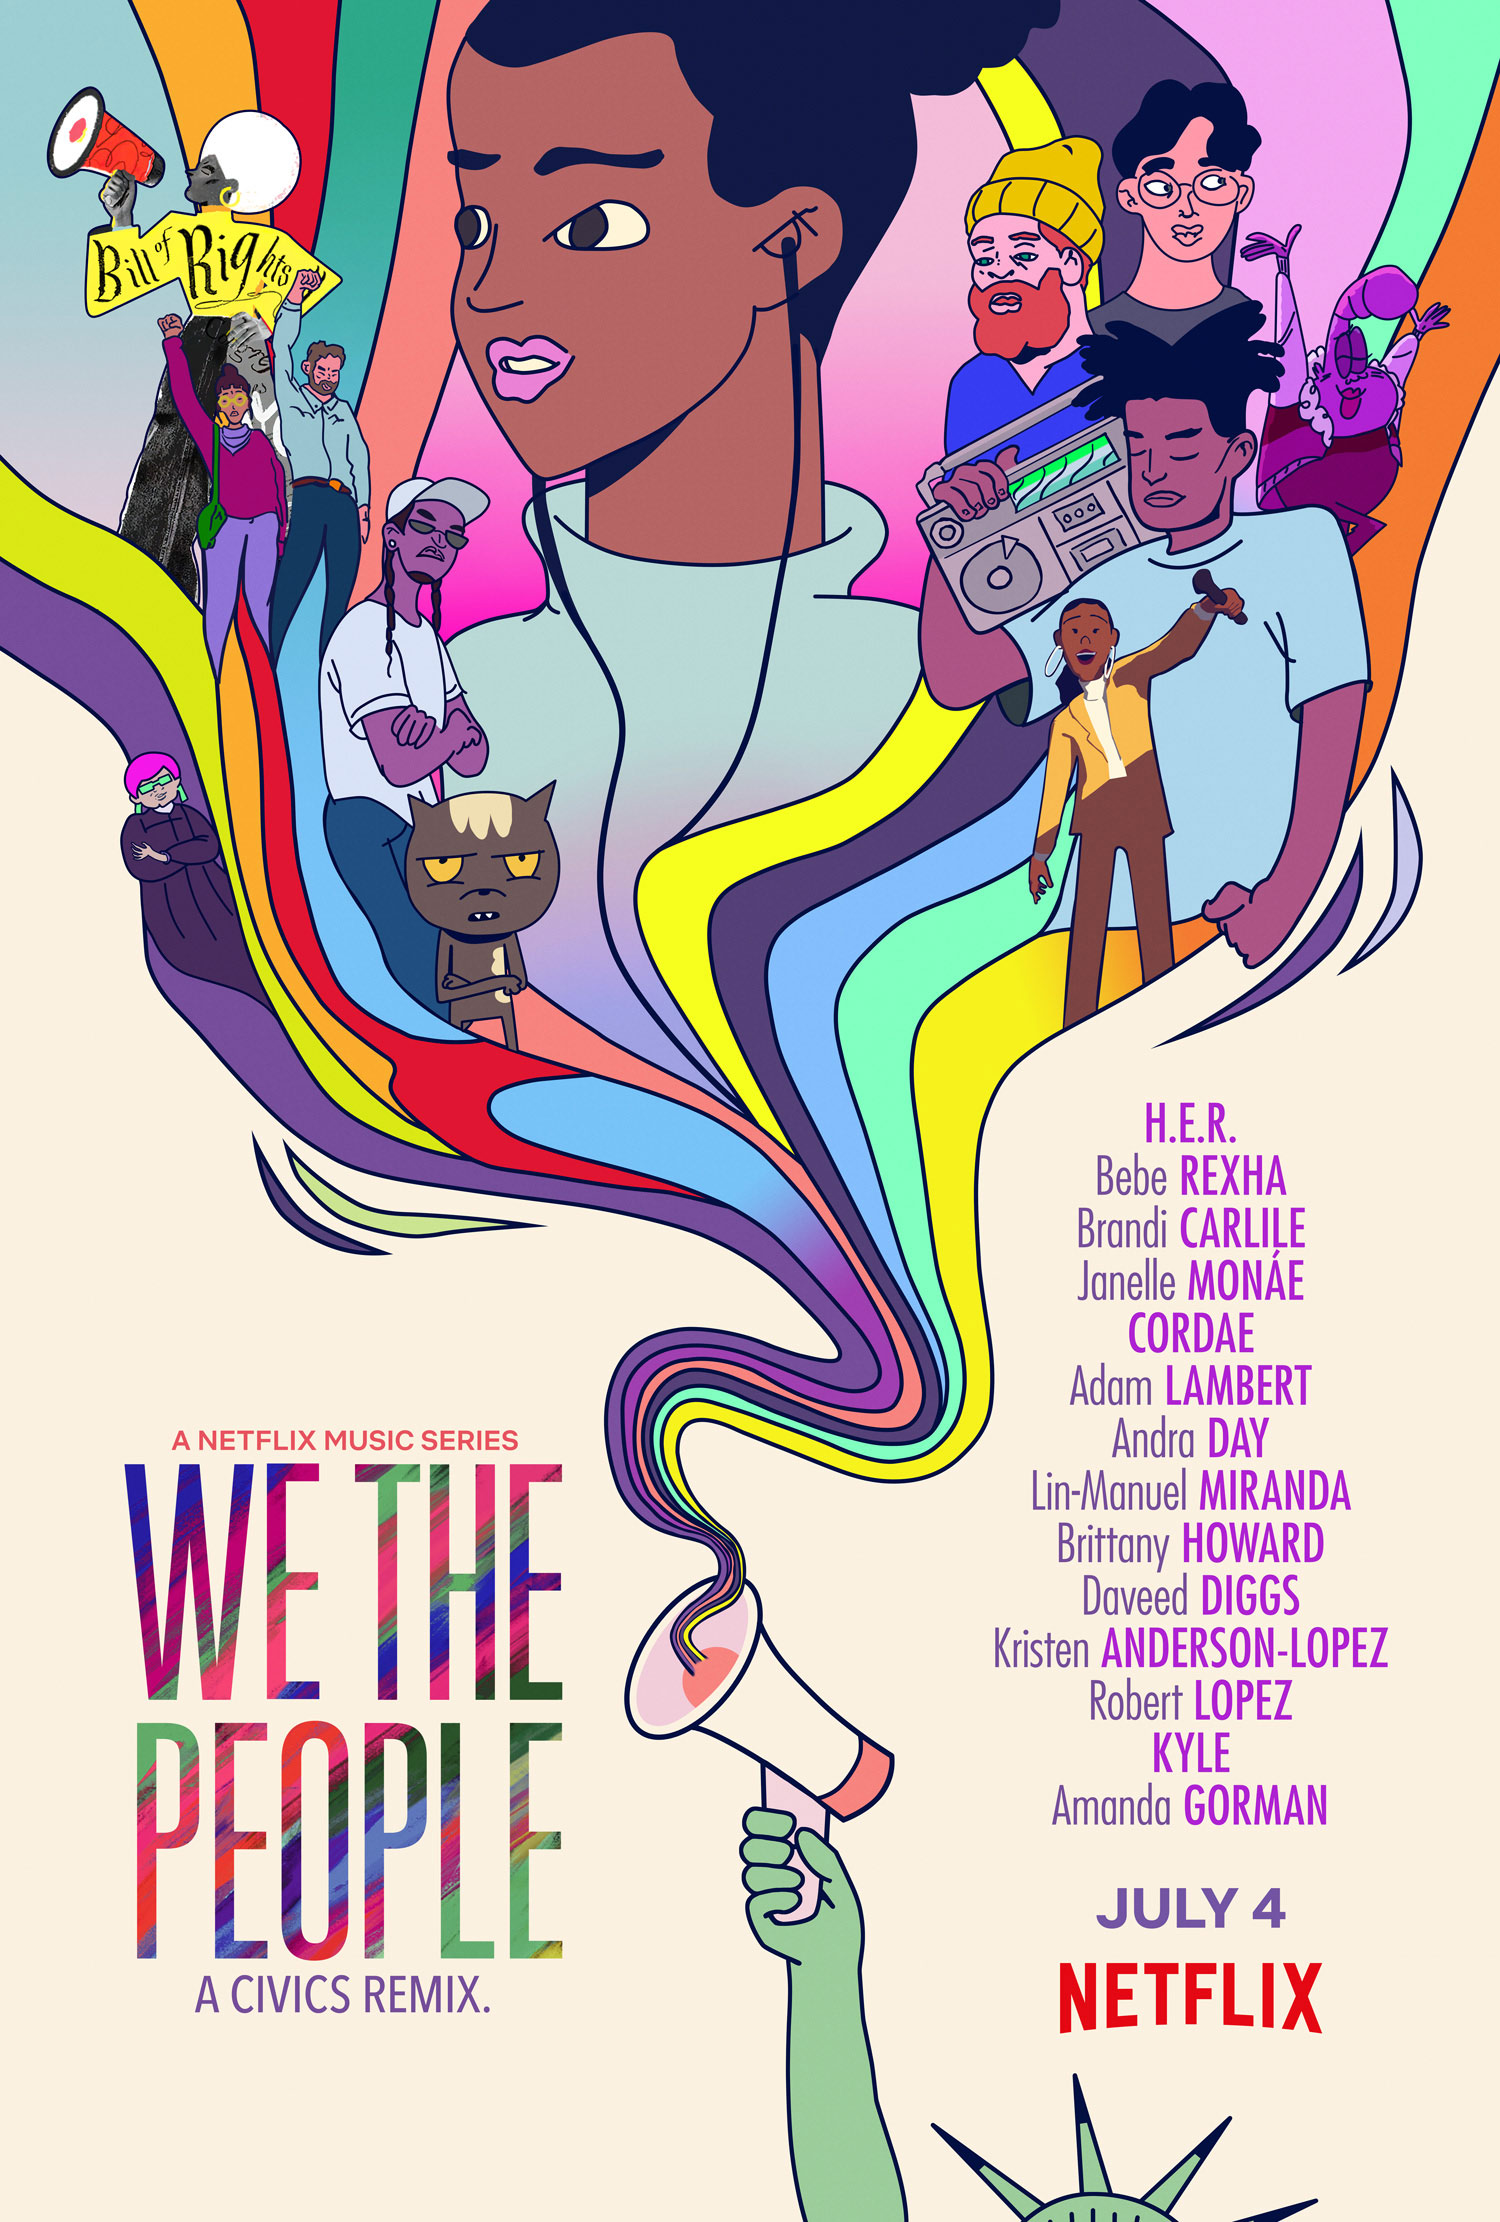 Animation All-Stars Team With Obamas For Netflix Music Video Series 'We The People'